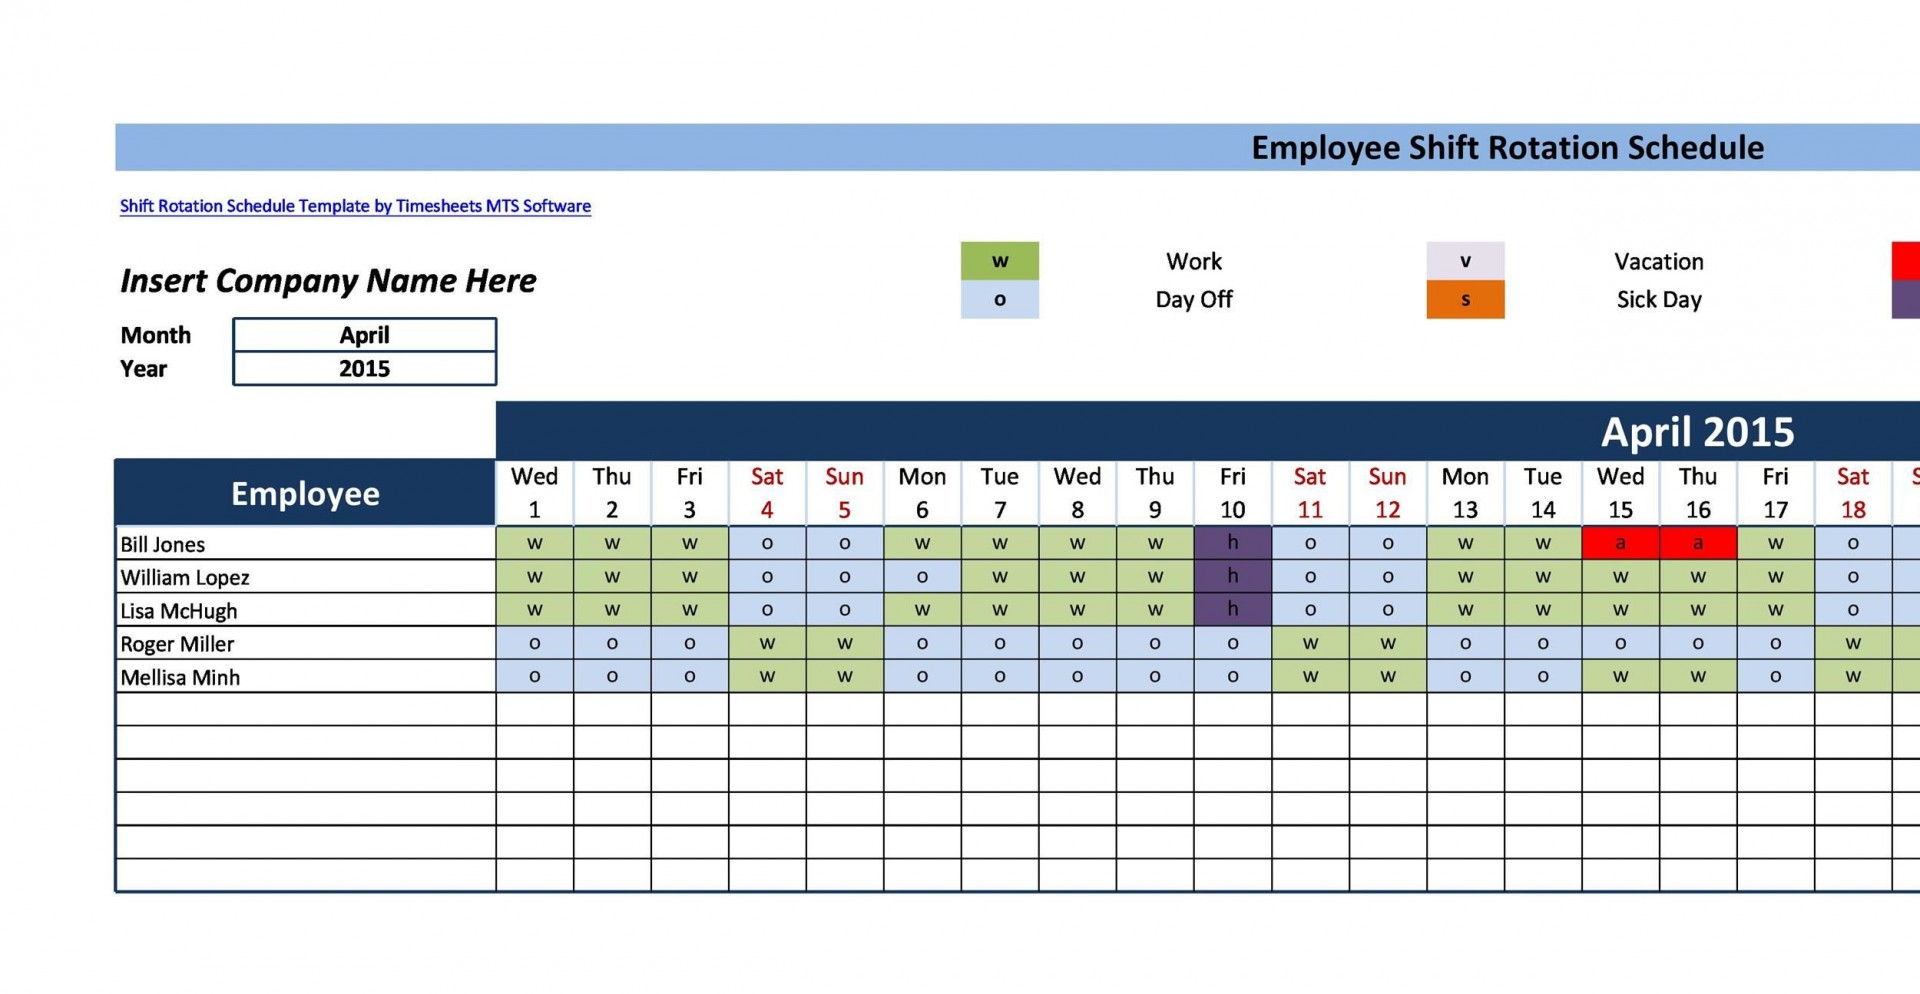 003 Formidable Rotating Work Schedule Example High Resolution  Examples Shift1920